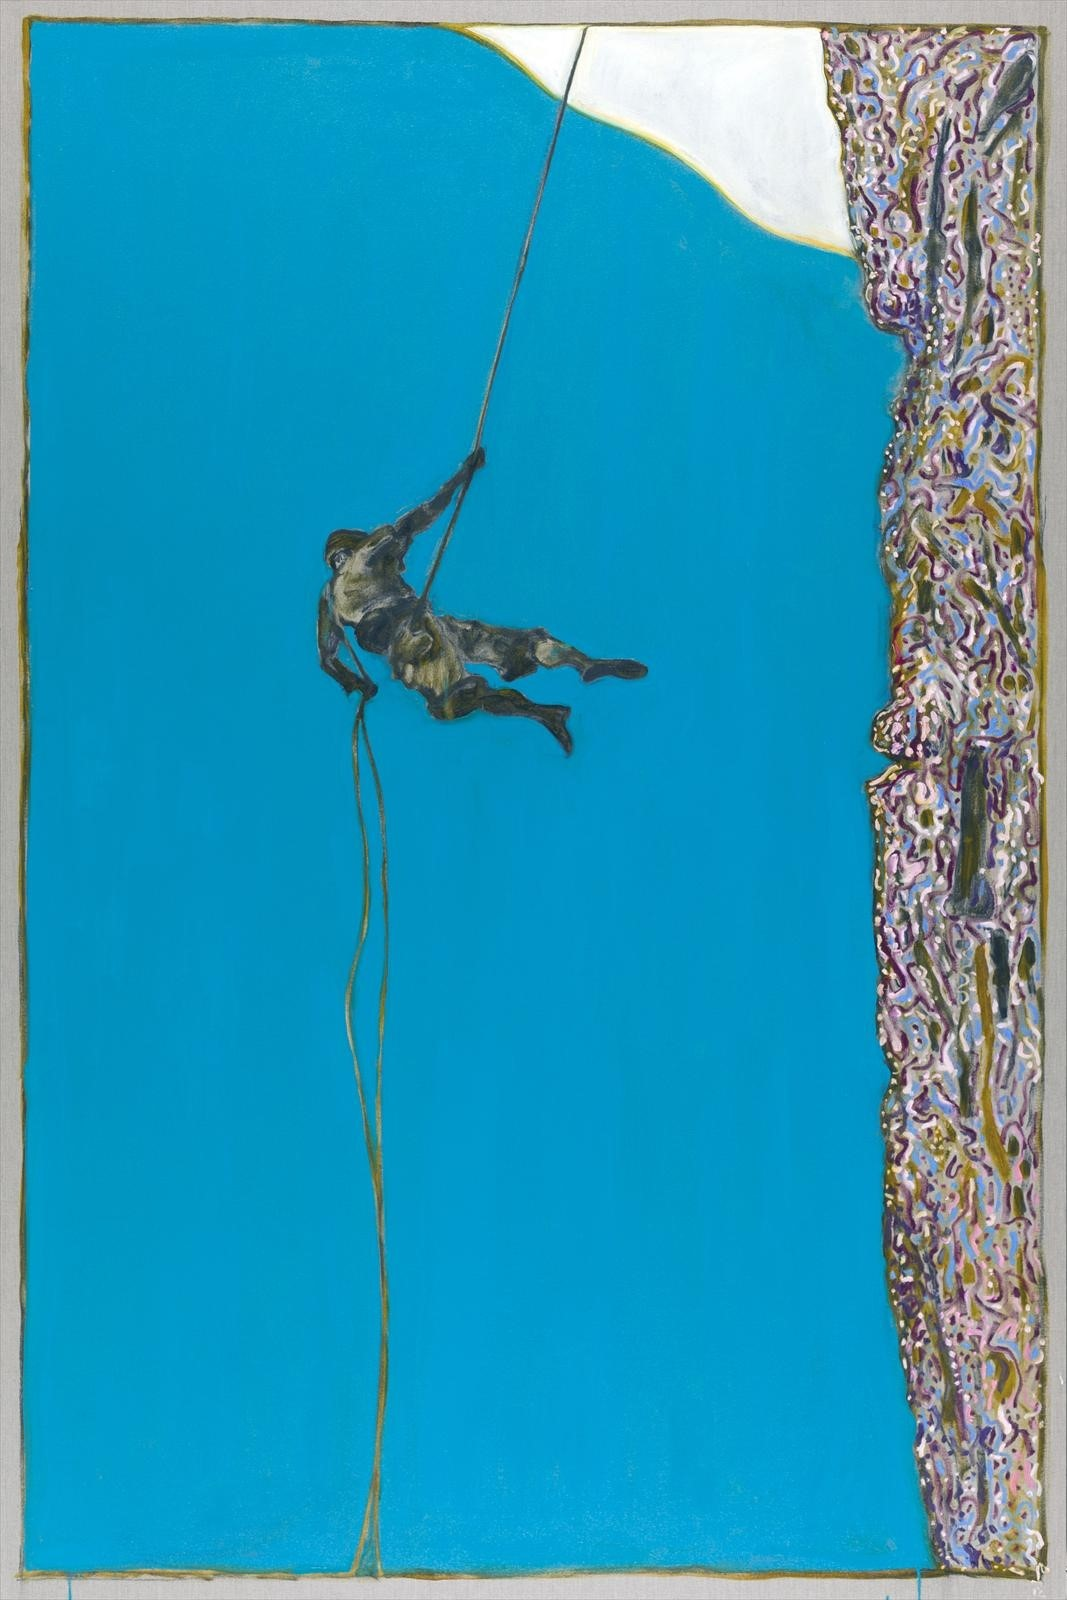 Billy Childish, Abseiler, 2012